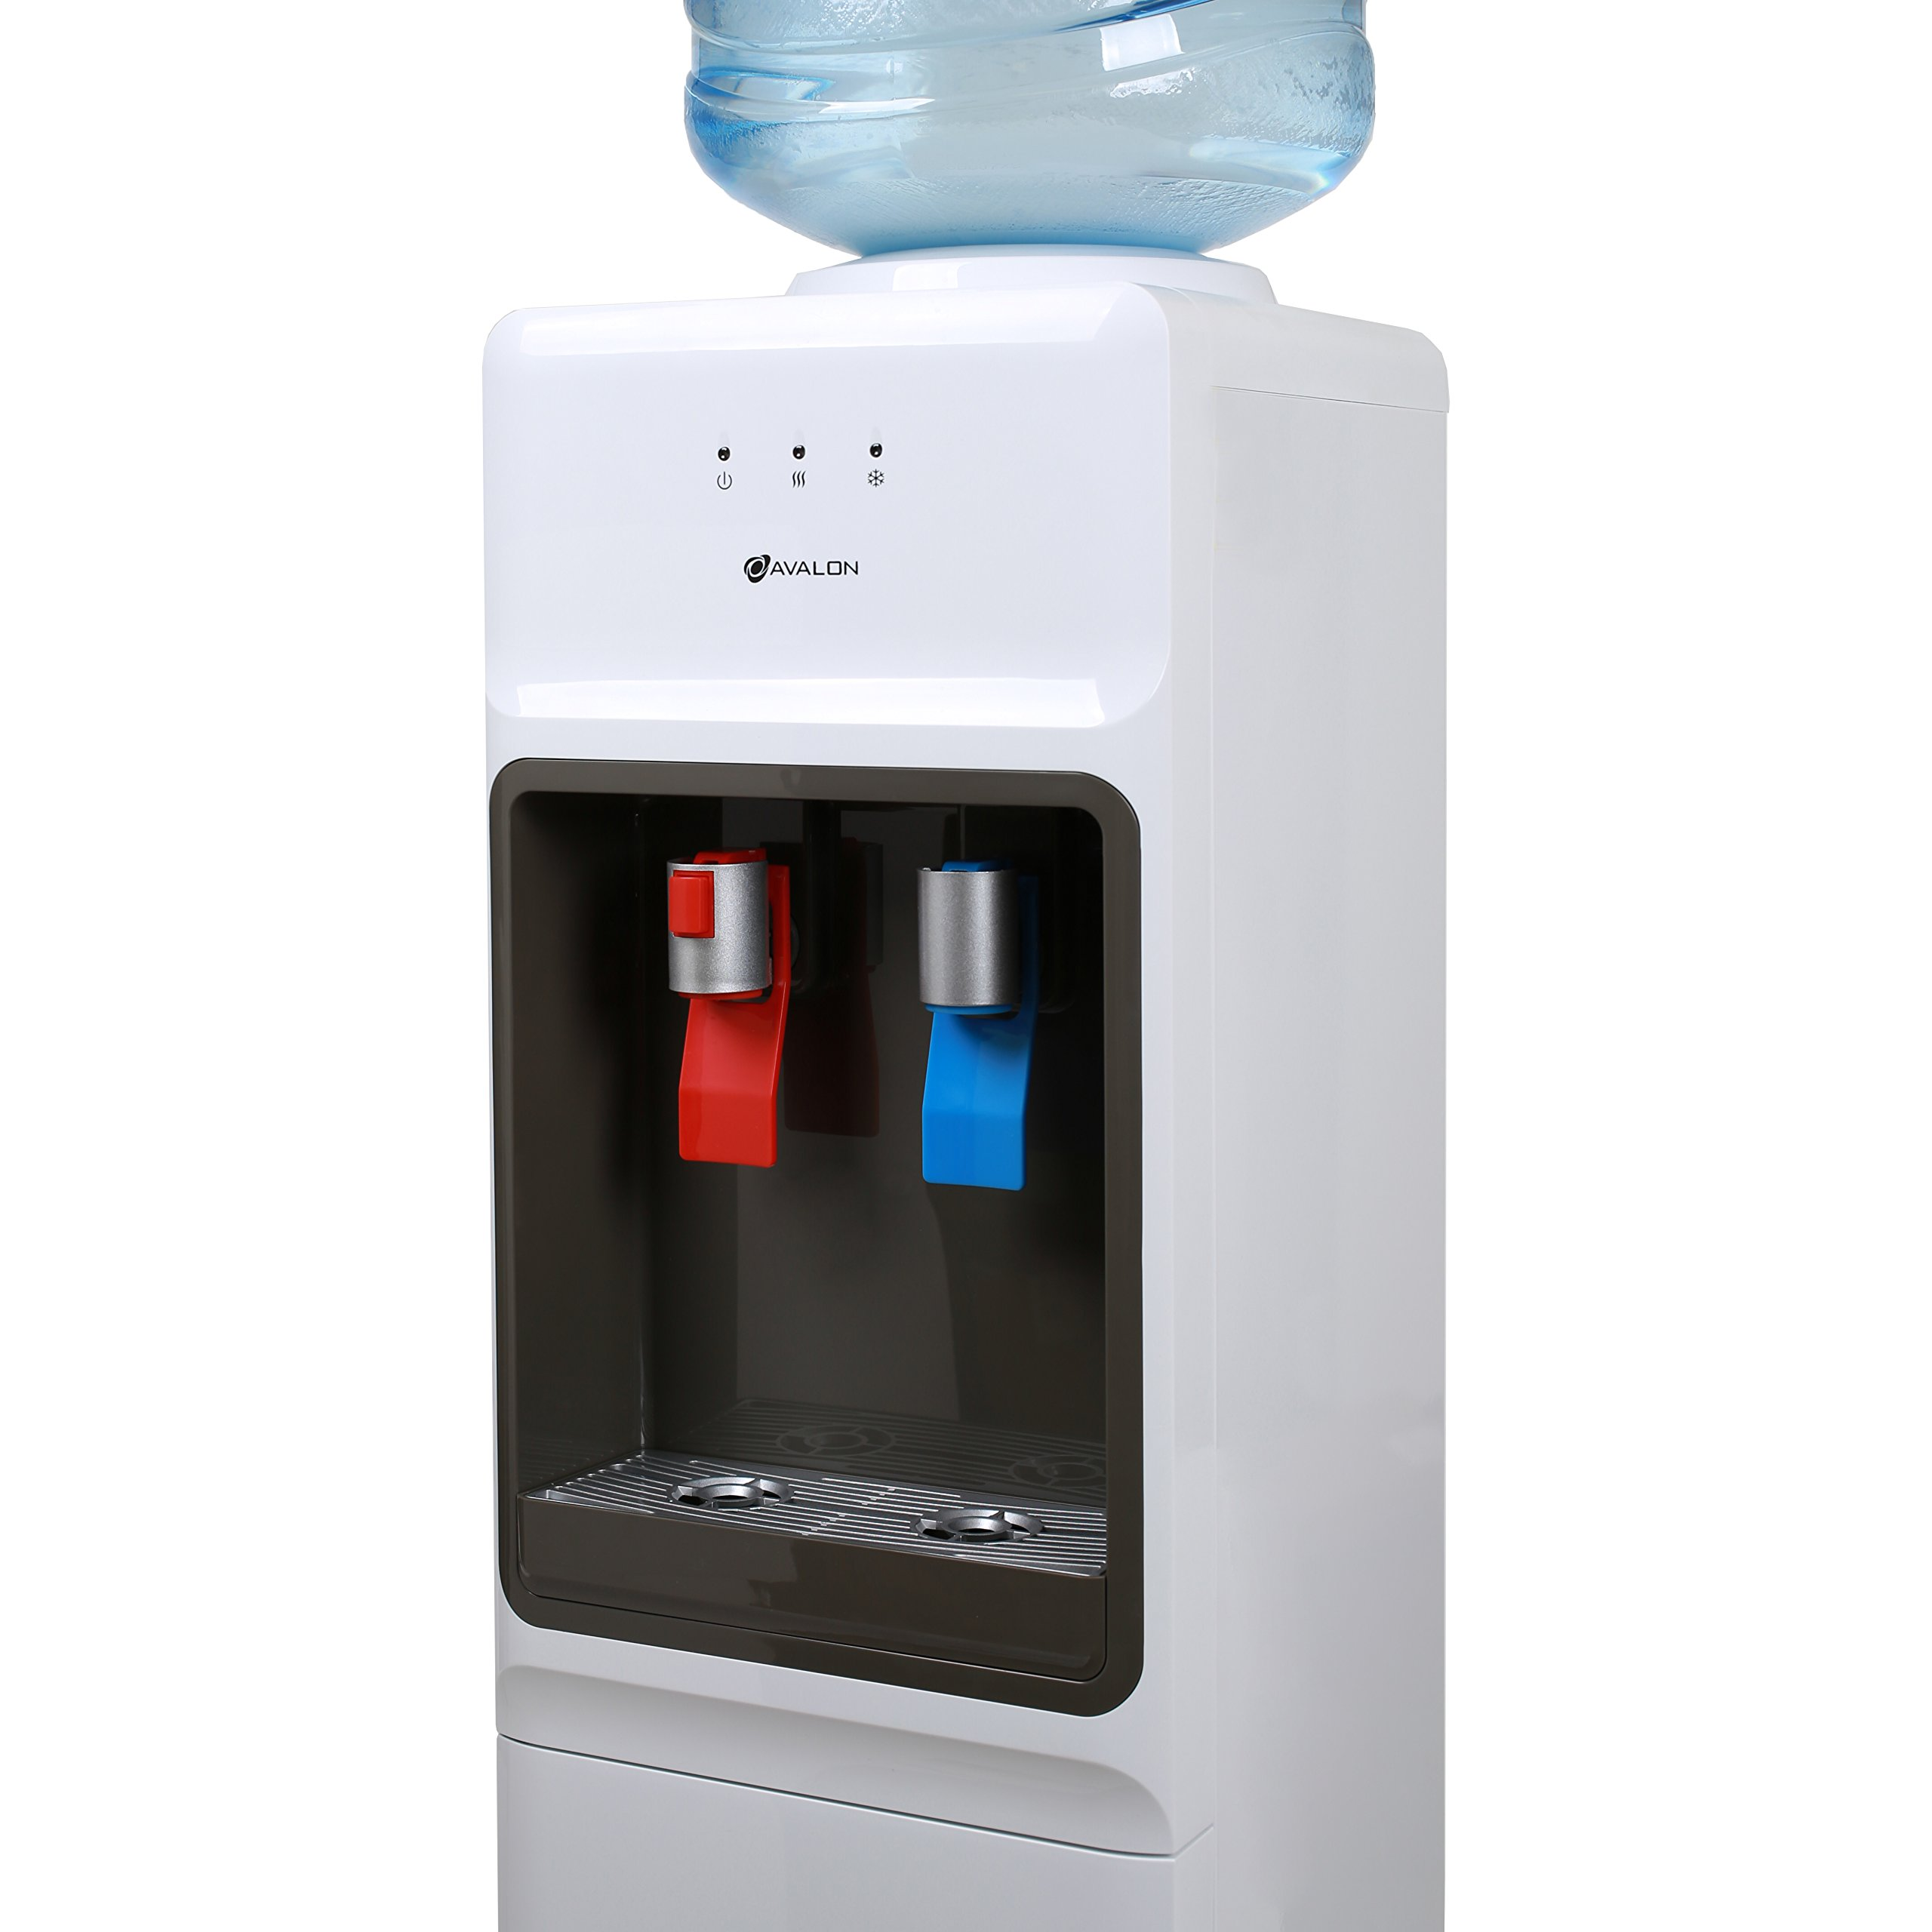 Hot And Cold Water Cooler Dispenser Avalon Top Loading Water Cooler Dispenser Hot Cold Water Child